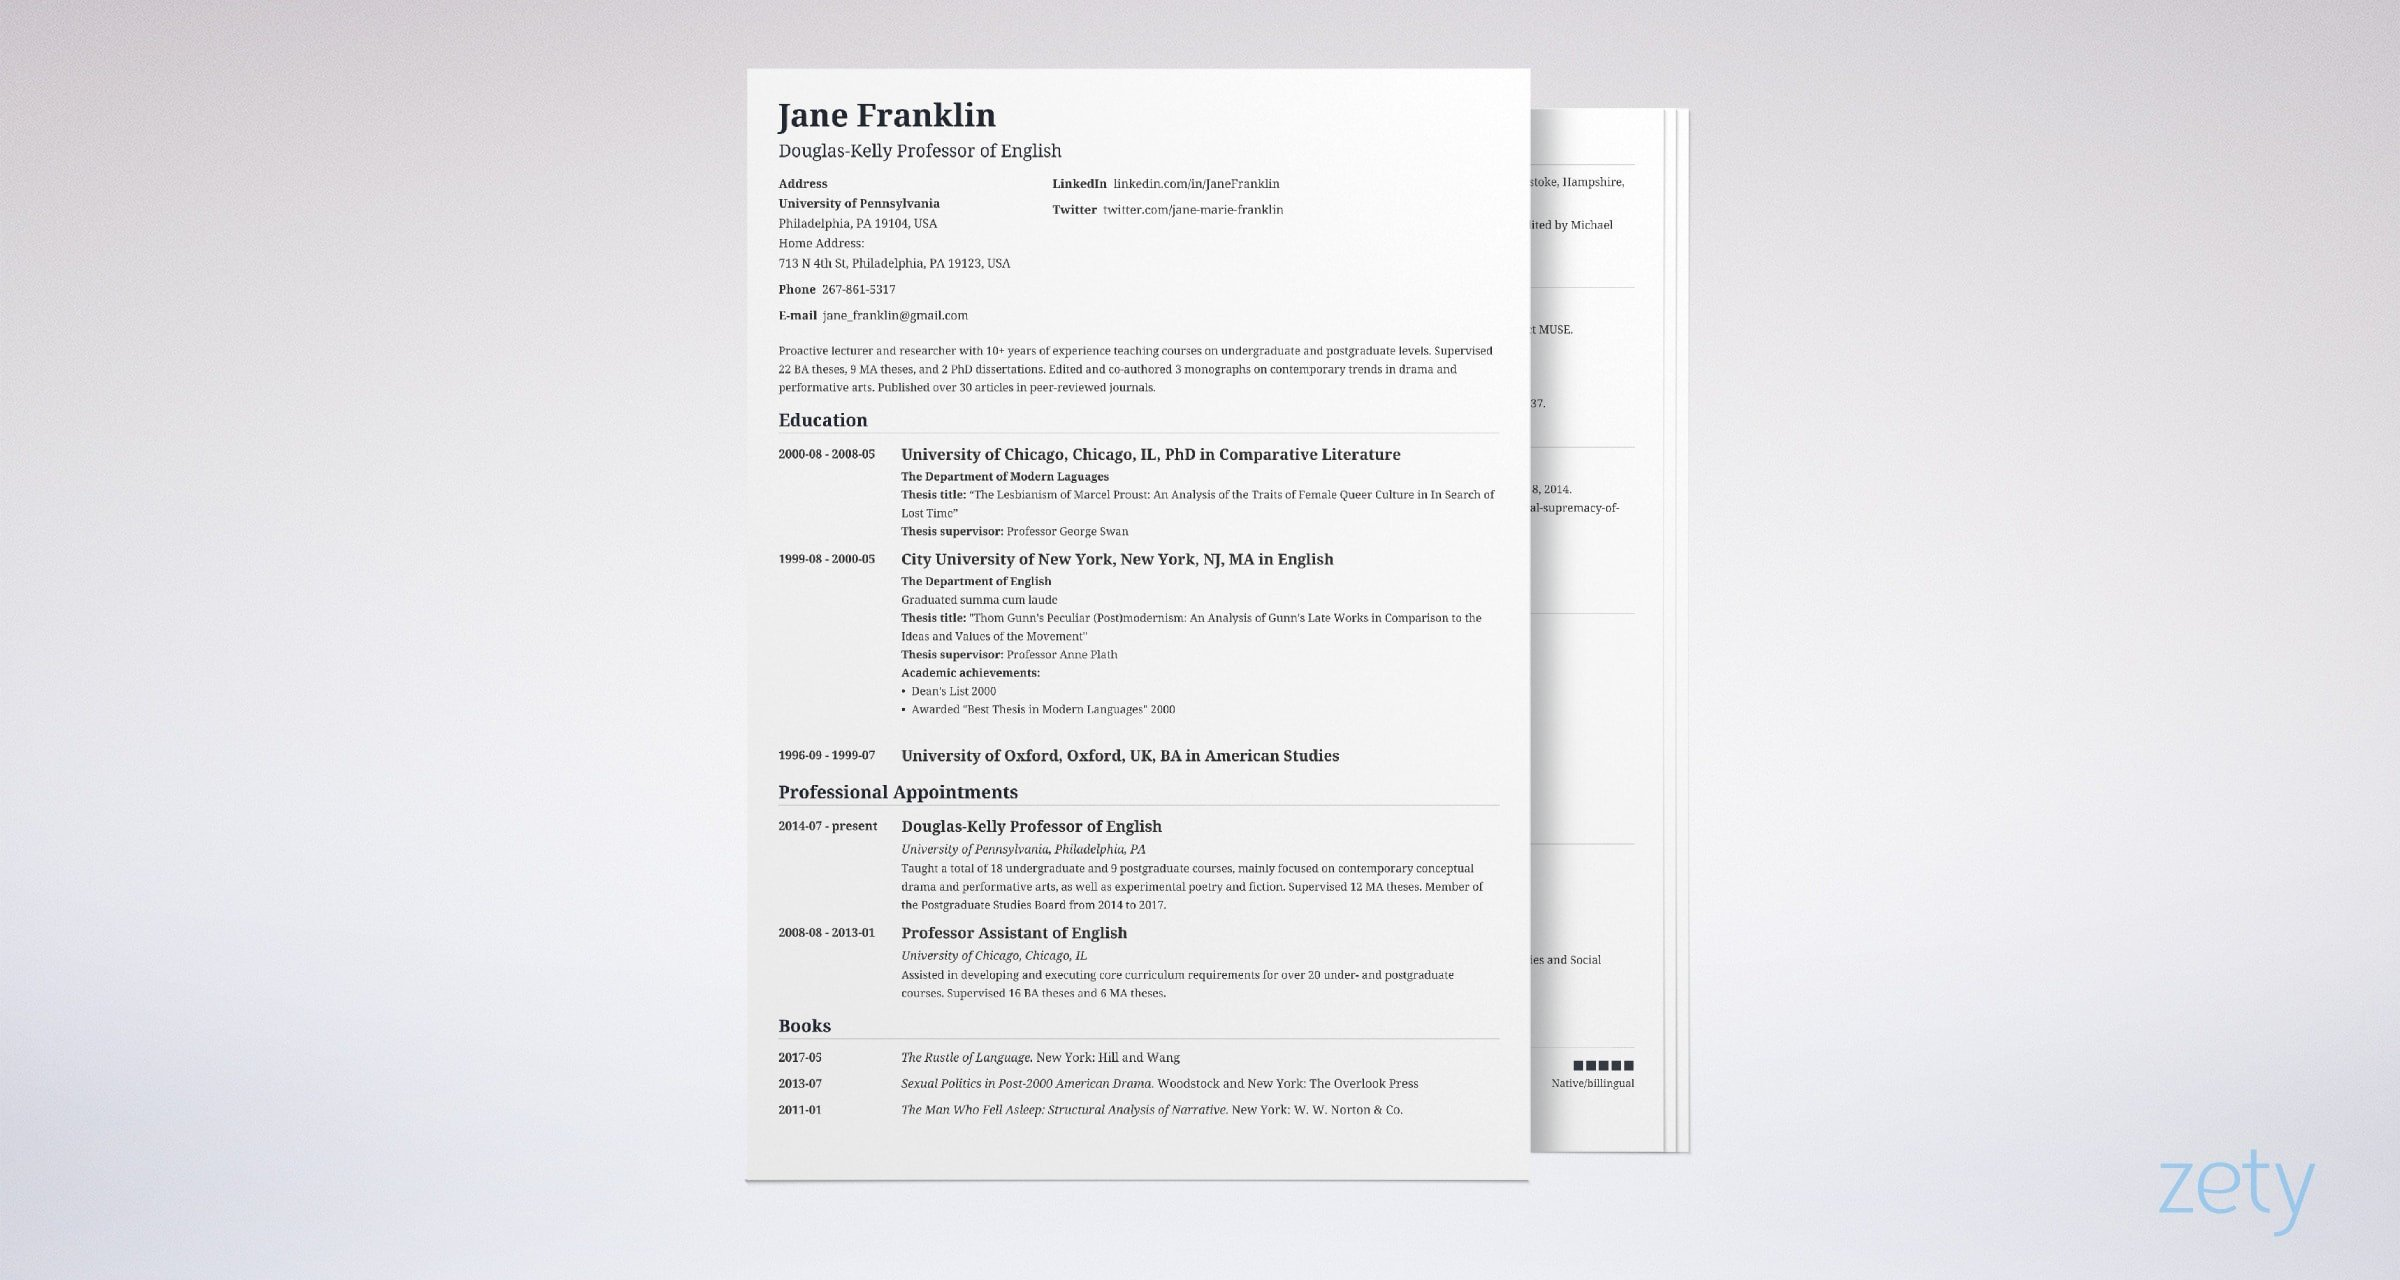 CV Vs. Resume: Difference, Definitions & When To Use Which (Samples